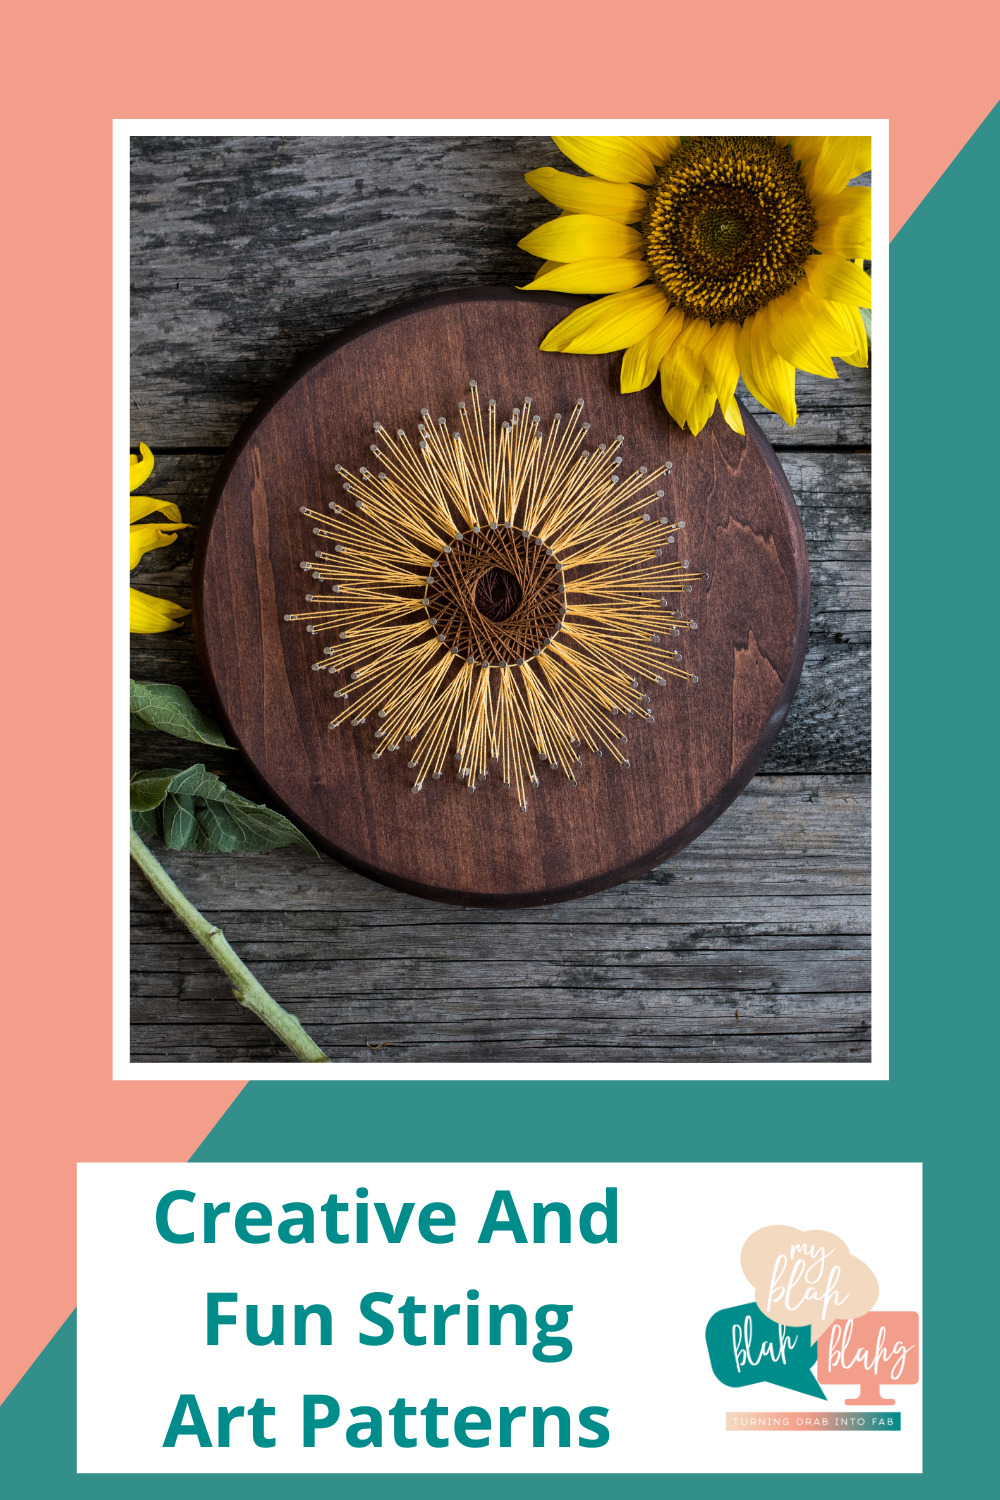 Myblahblahblahg.com has all you need from DIY projects to life hacks! Find out all of the creative ways you can make things with your hands! Try these string art ideas today!